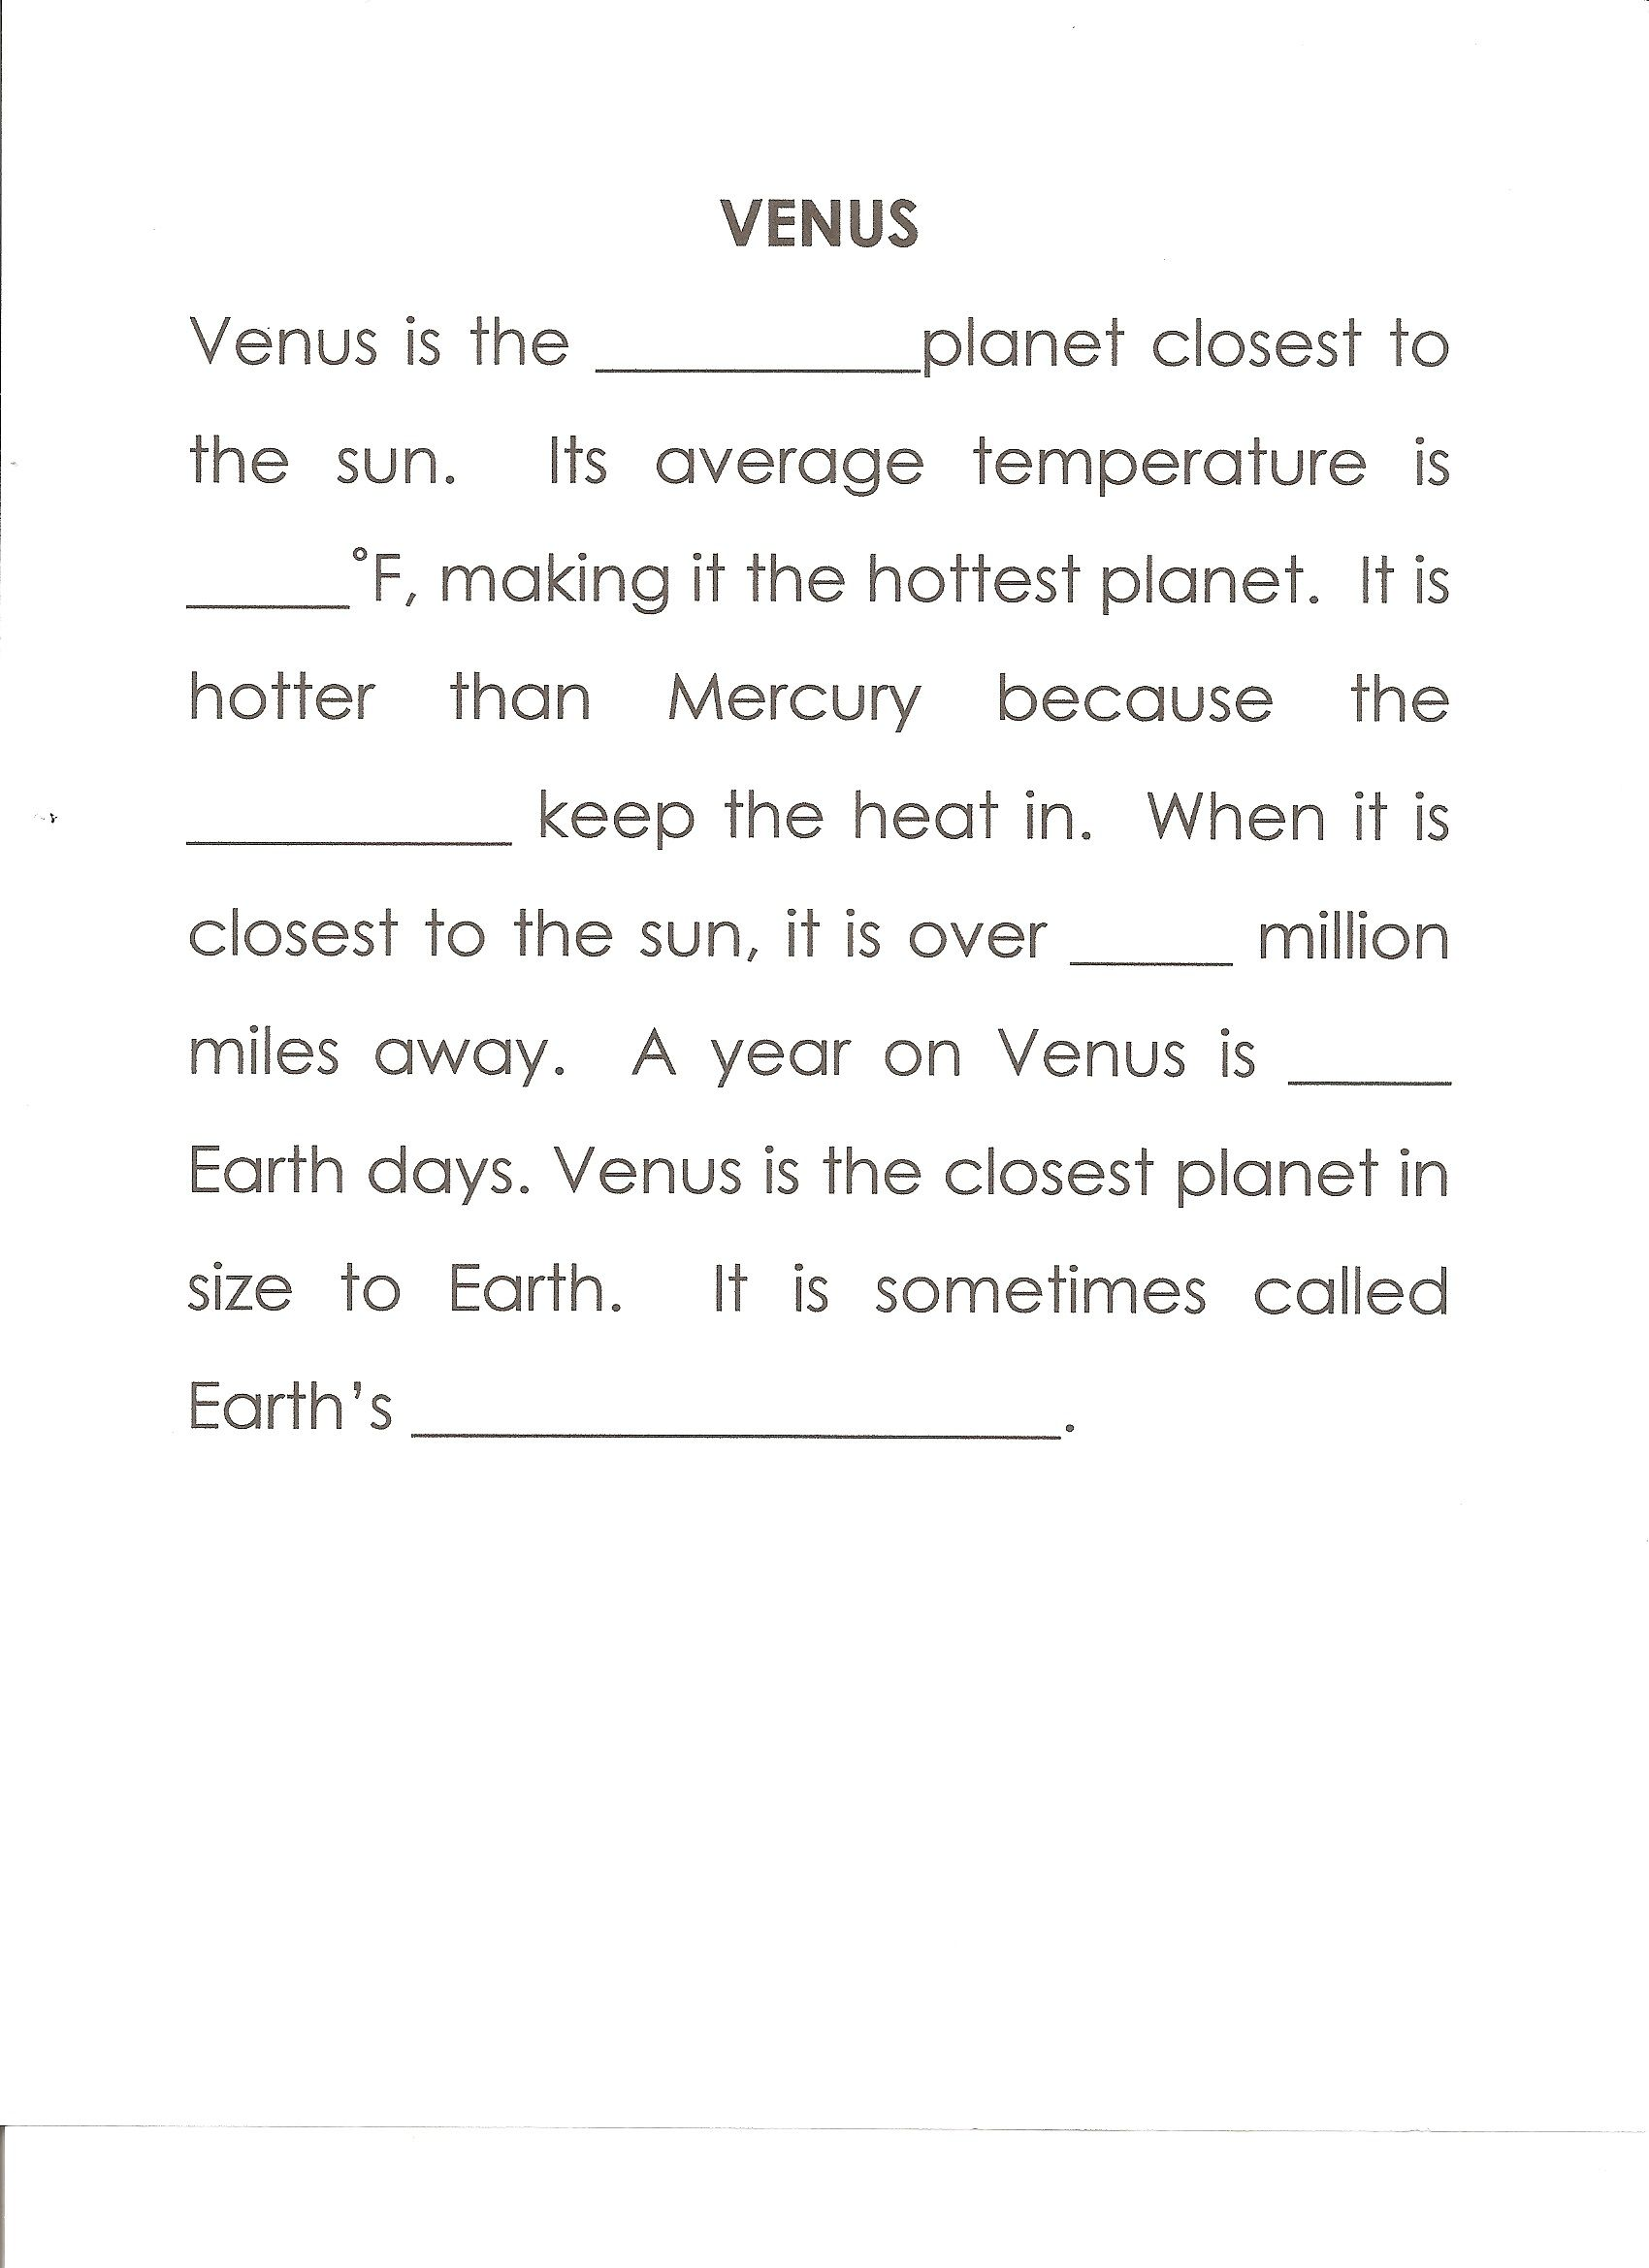 Venus Worksheet Answers Second 864 Clouds 67 224 Sister Planet Word Puzzles For Kids Homeschool Science Word Puzzles [ 2338 x 1700 Pixel ]